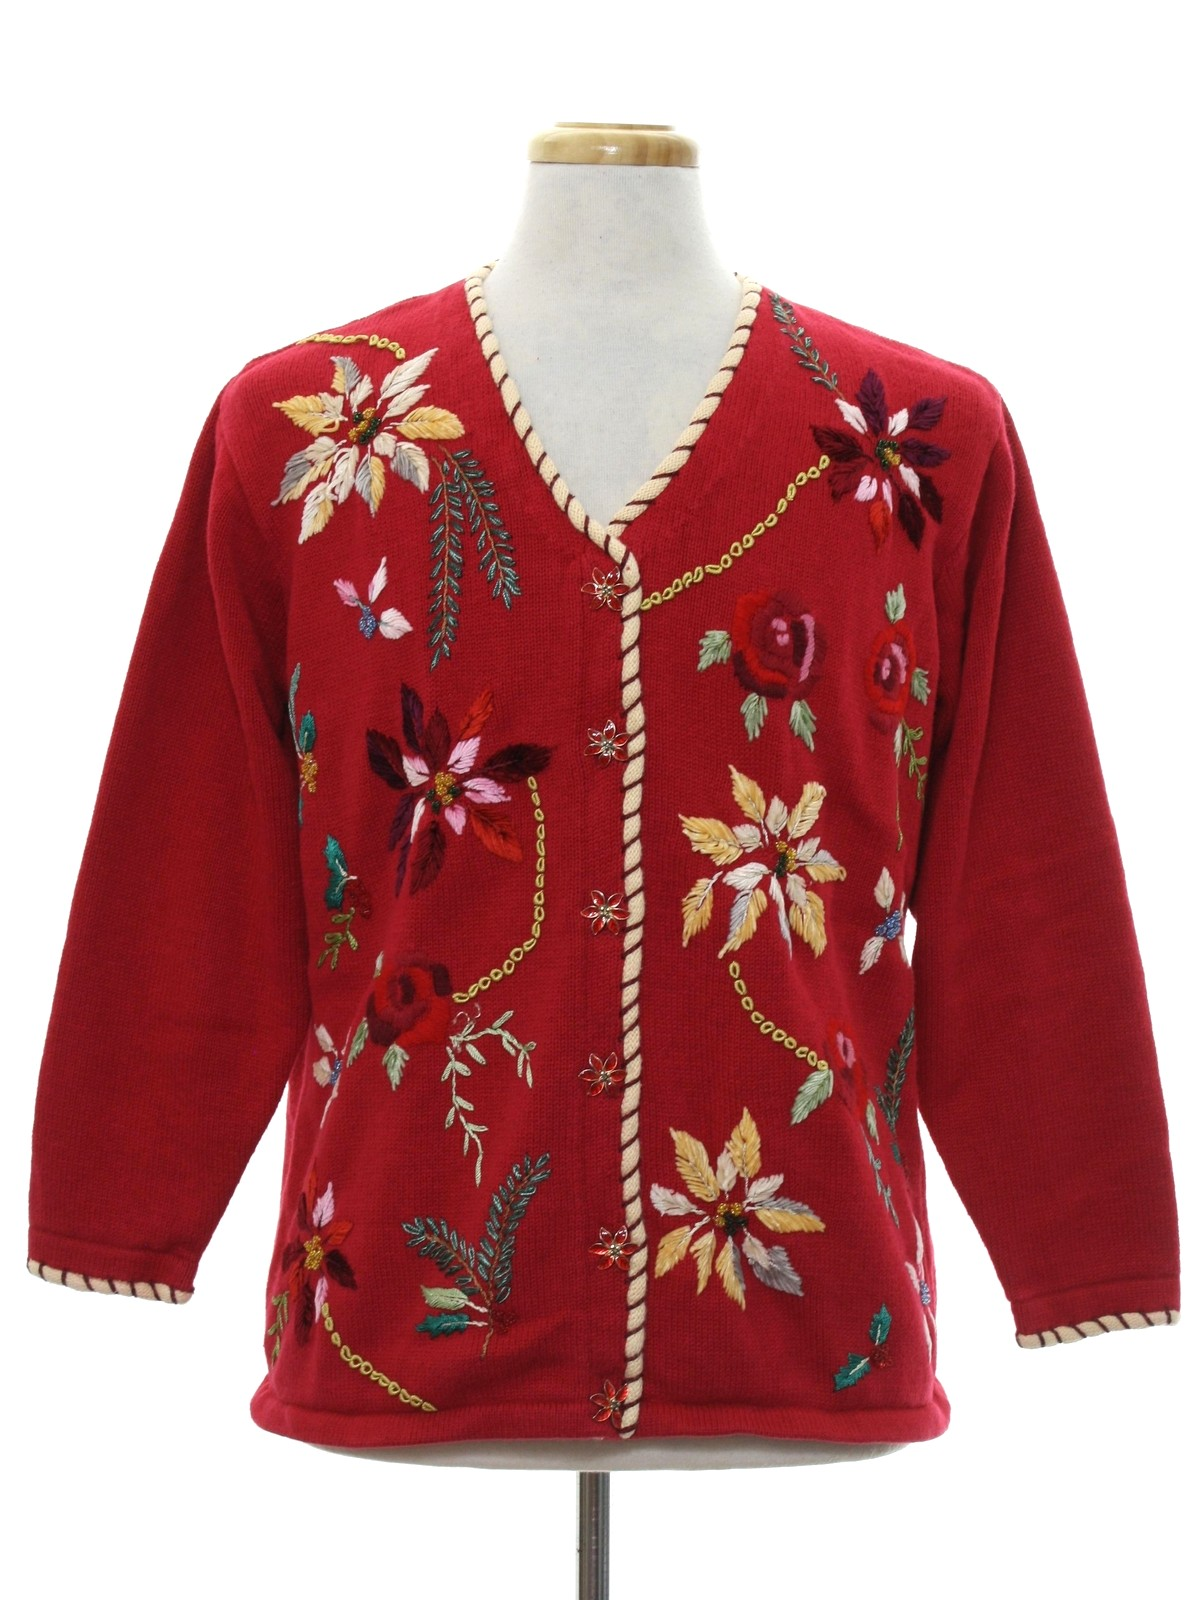 Ugly christmas cardigan sweater story brook knits for Over the top ugly christmas sweaters